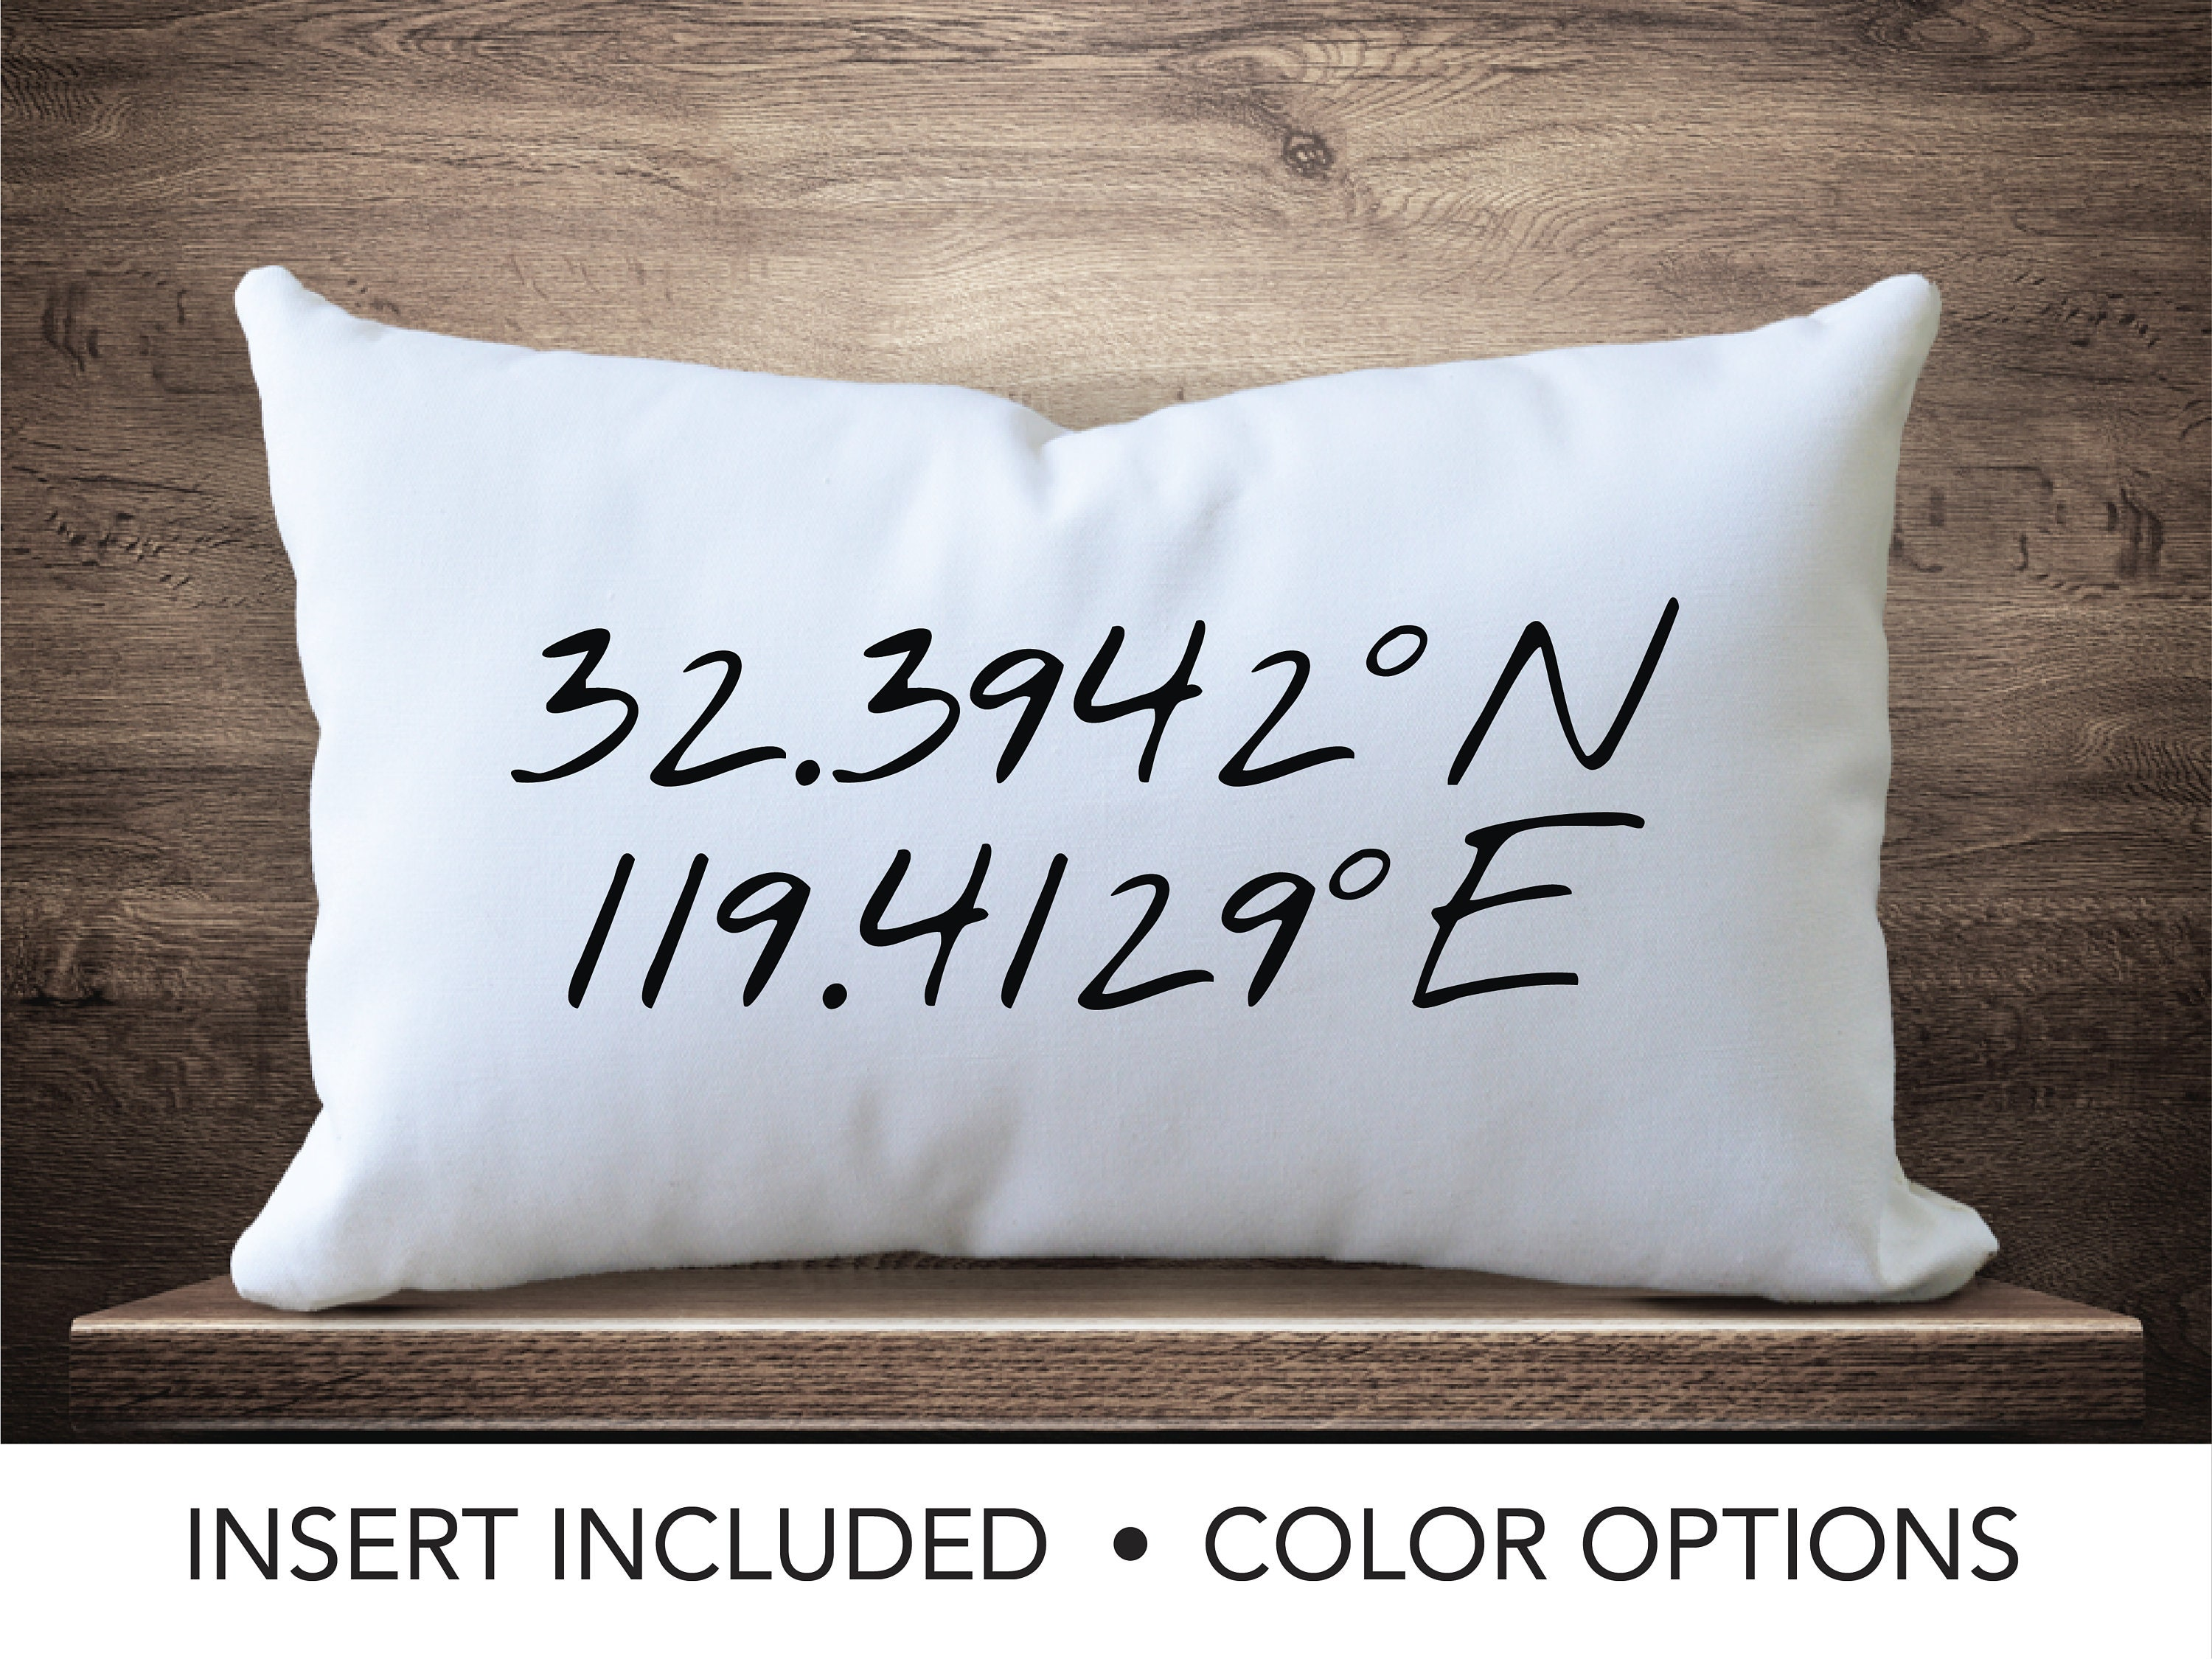 things pillow personalized img pillows